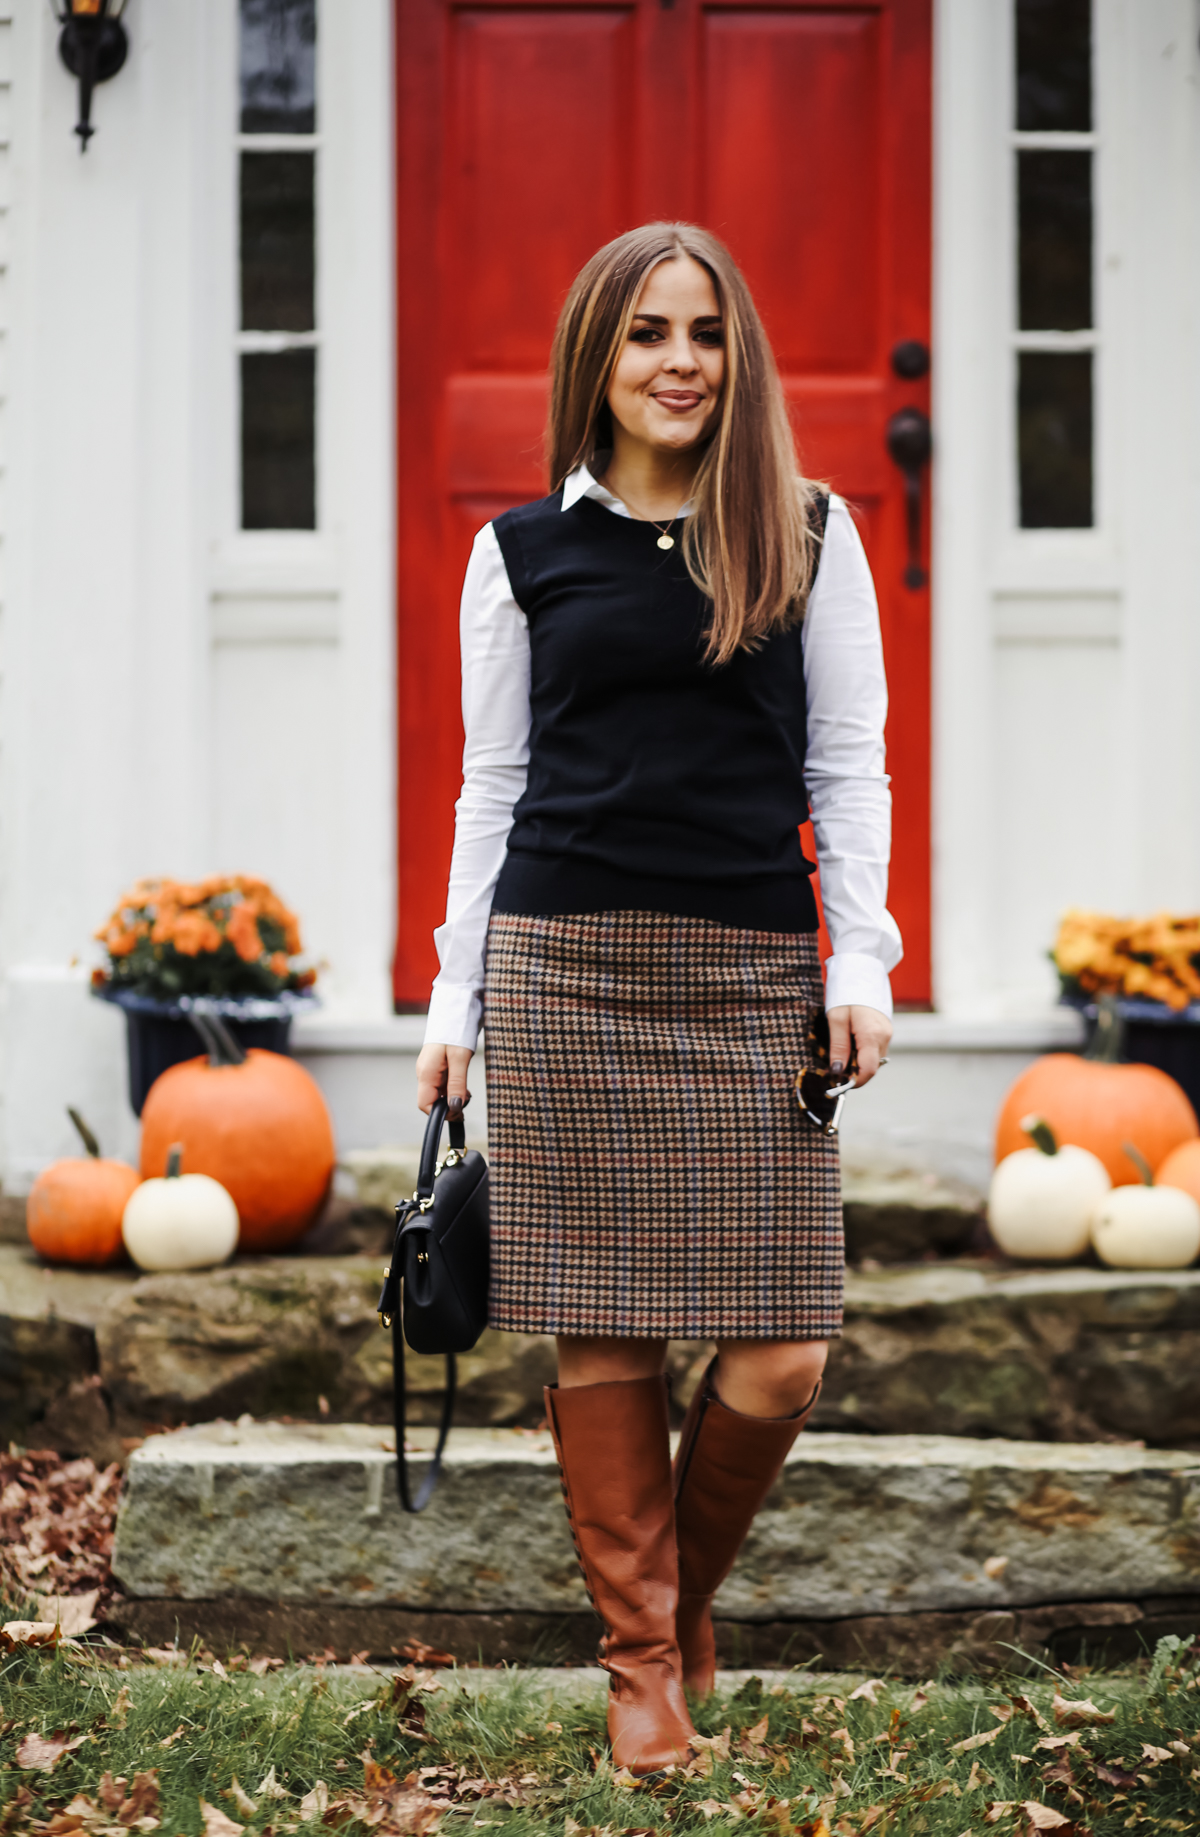 d8080bc50 preppy fall outfit tweed skirt and sweater vest-7 - dress cori lynn